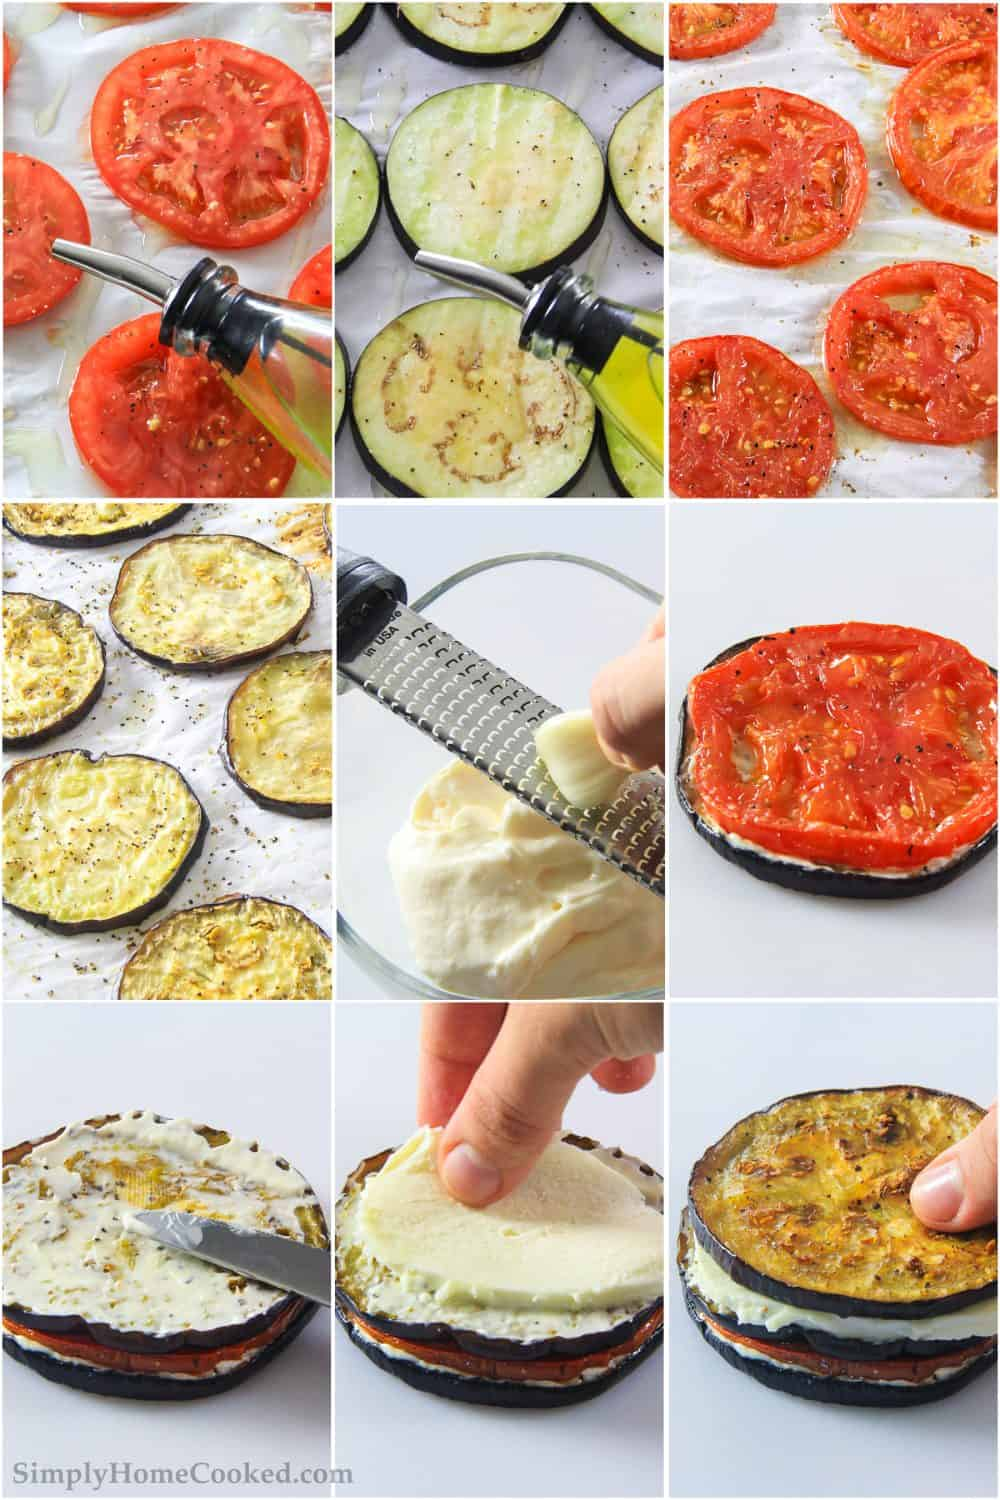 steps to make eggplant napoleon